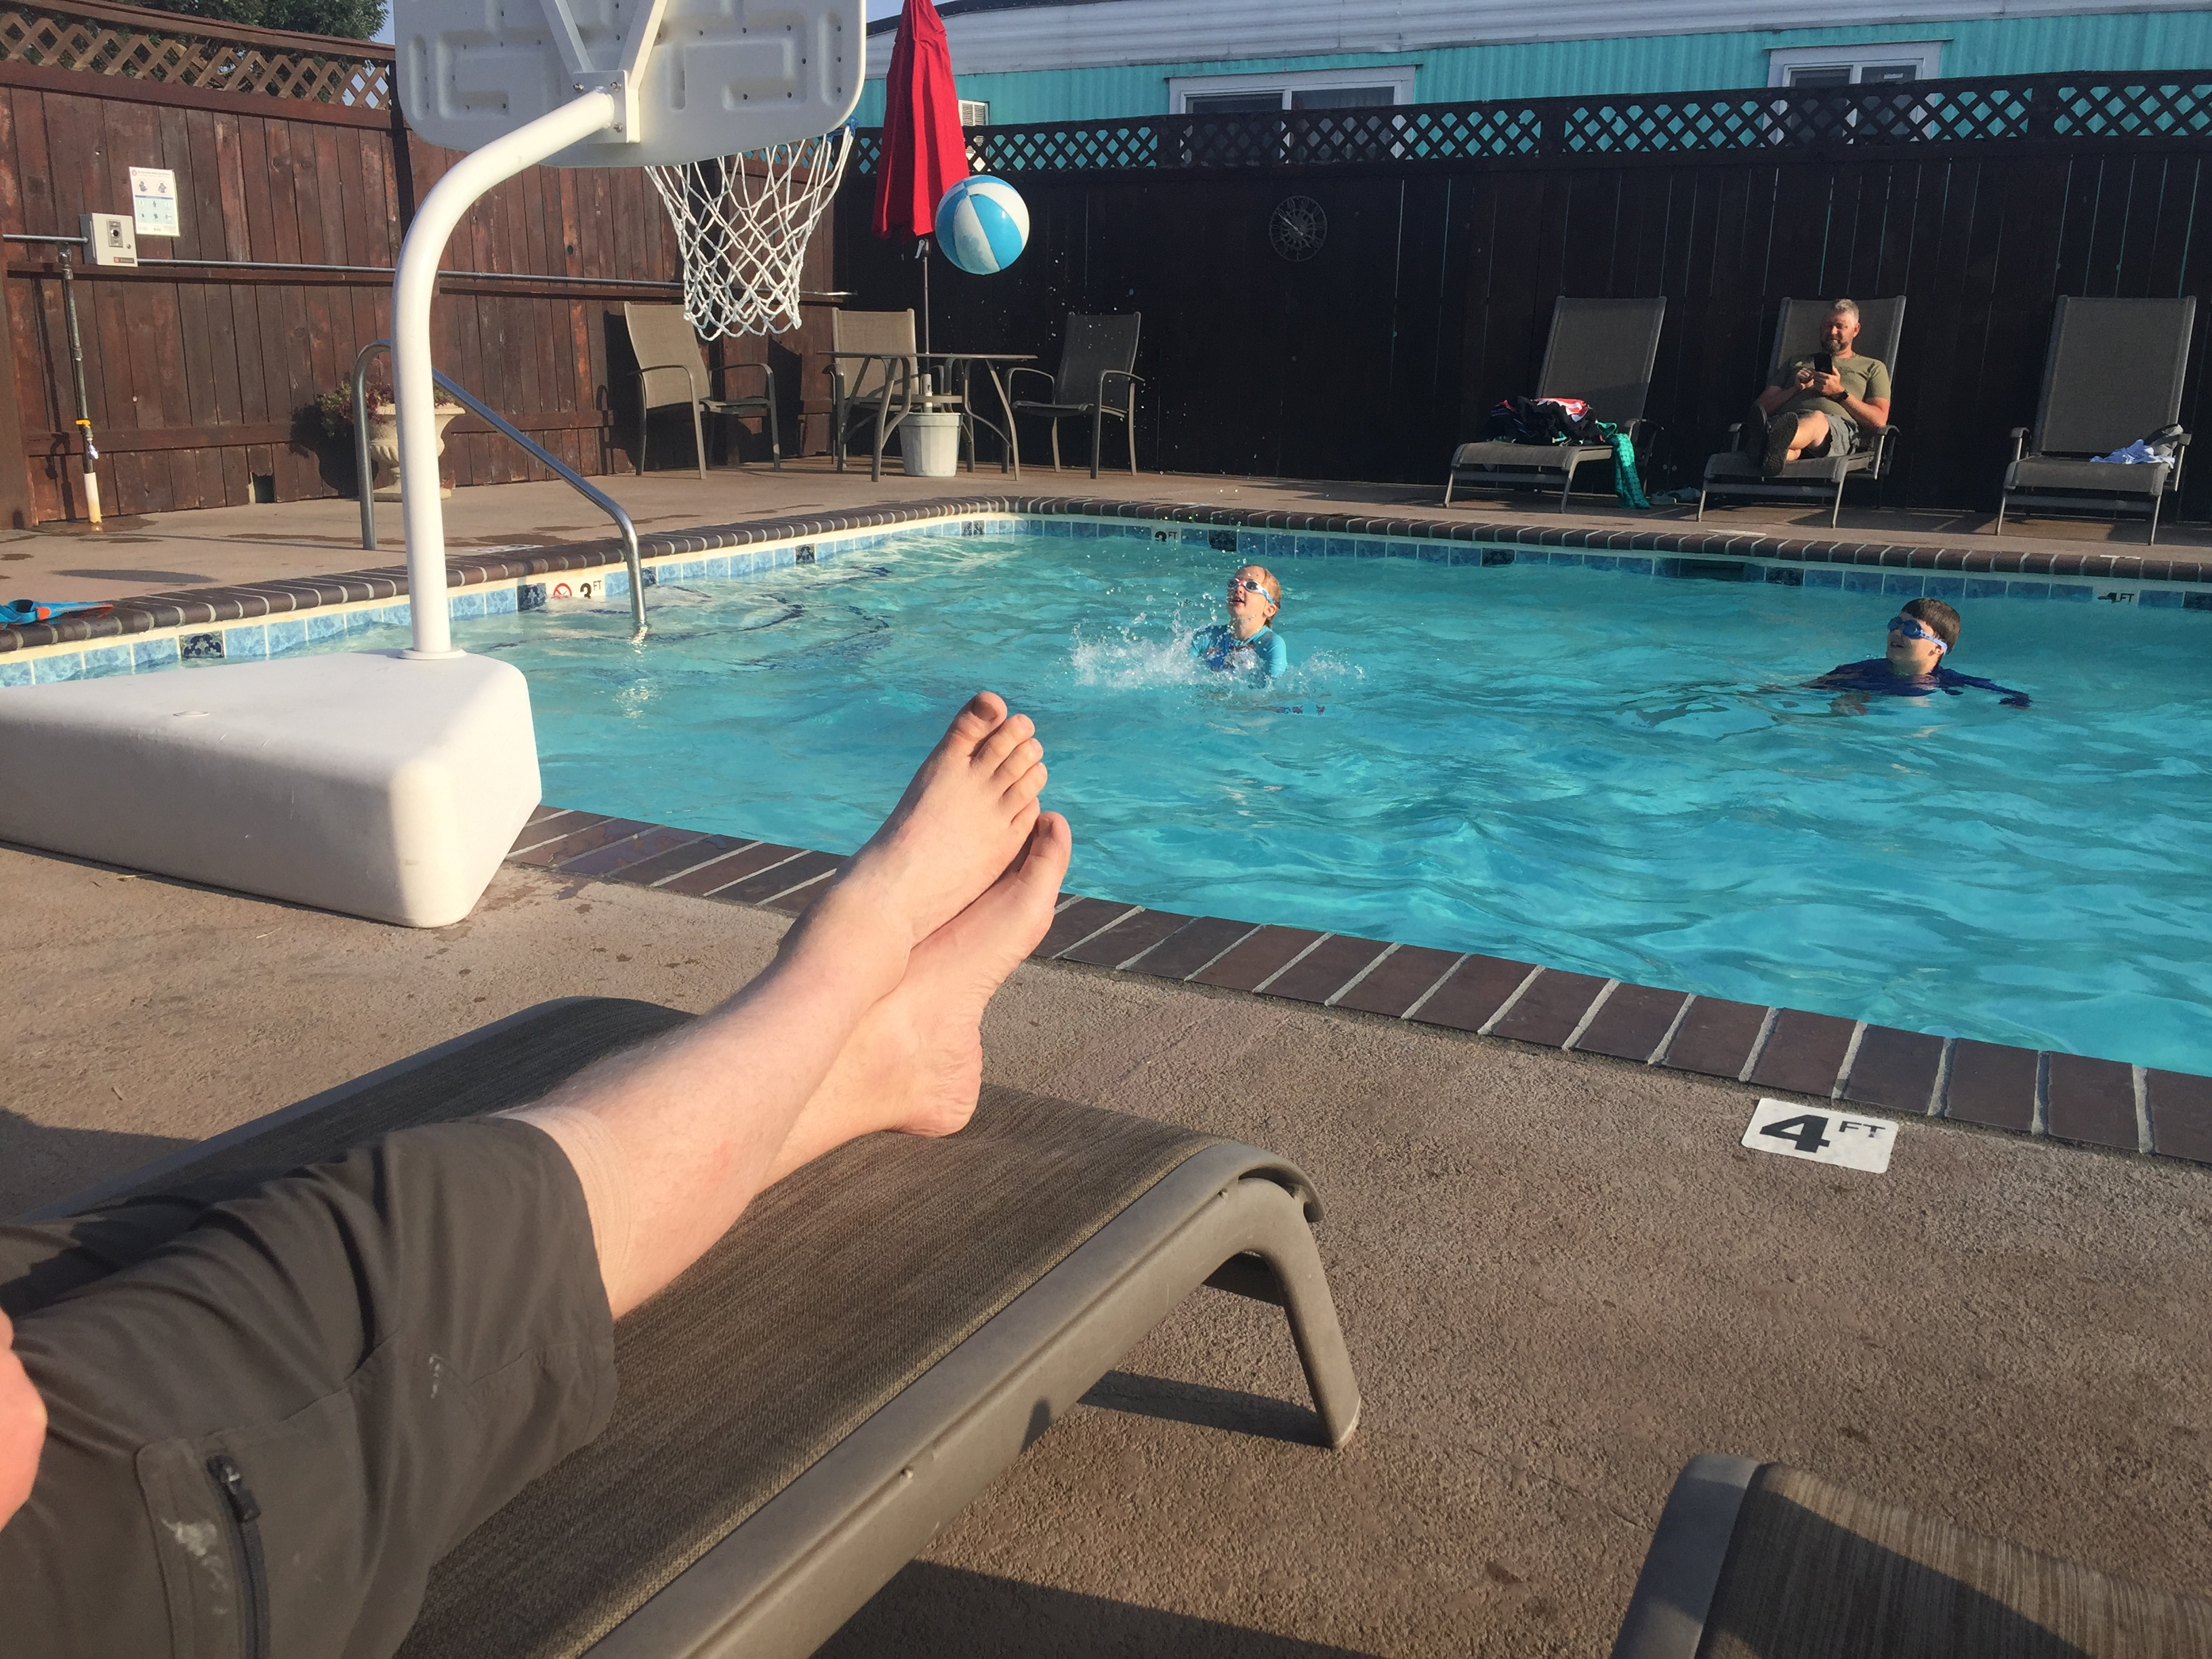 Kids splashing in swimming pool with adult bare feet on lounger poolside in foreground